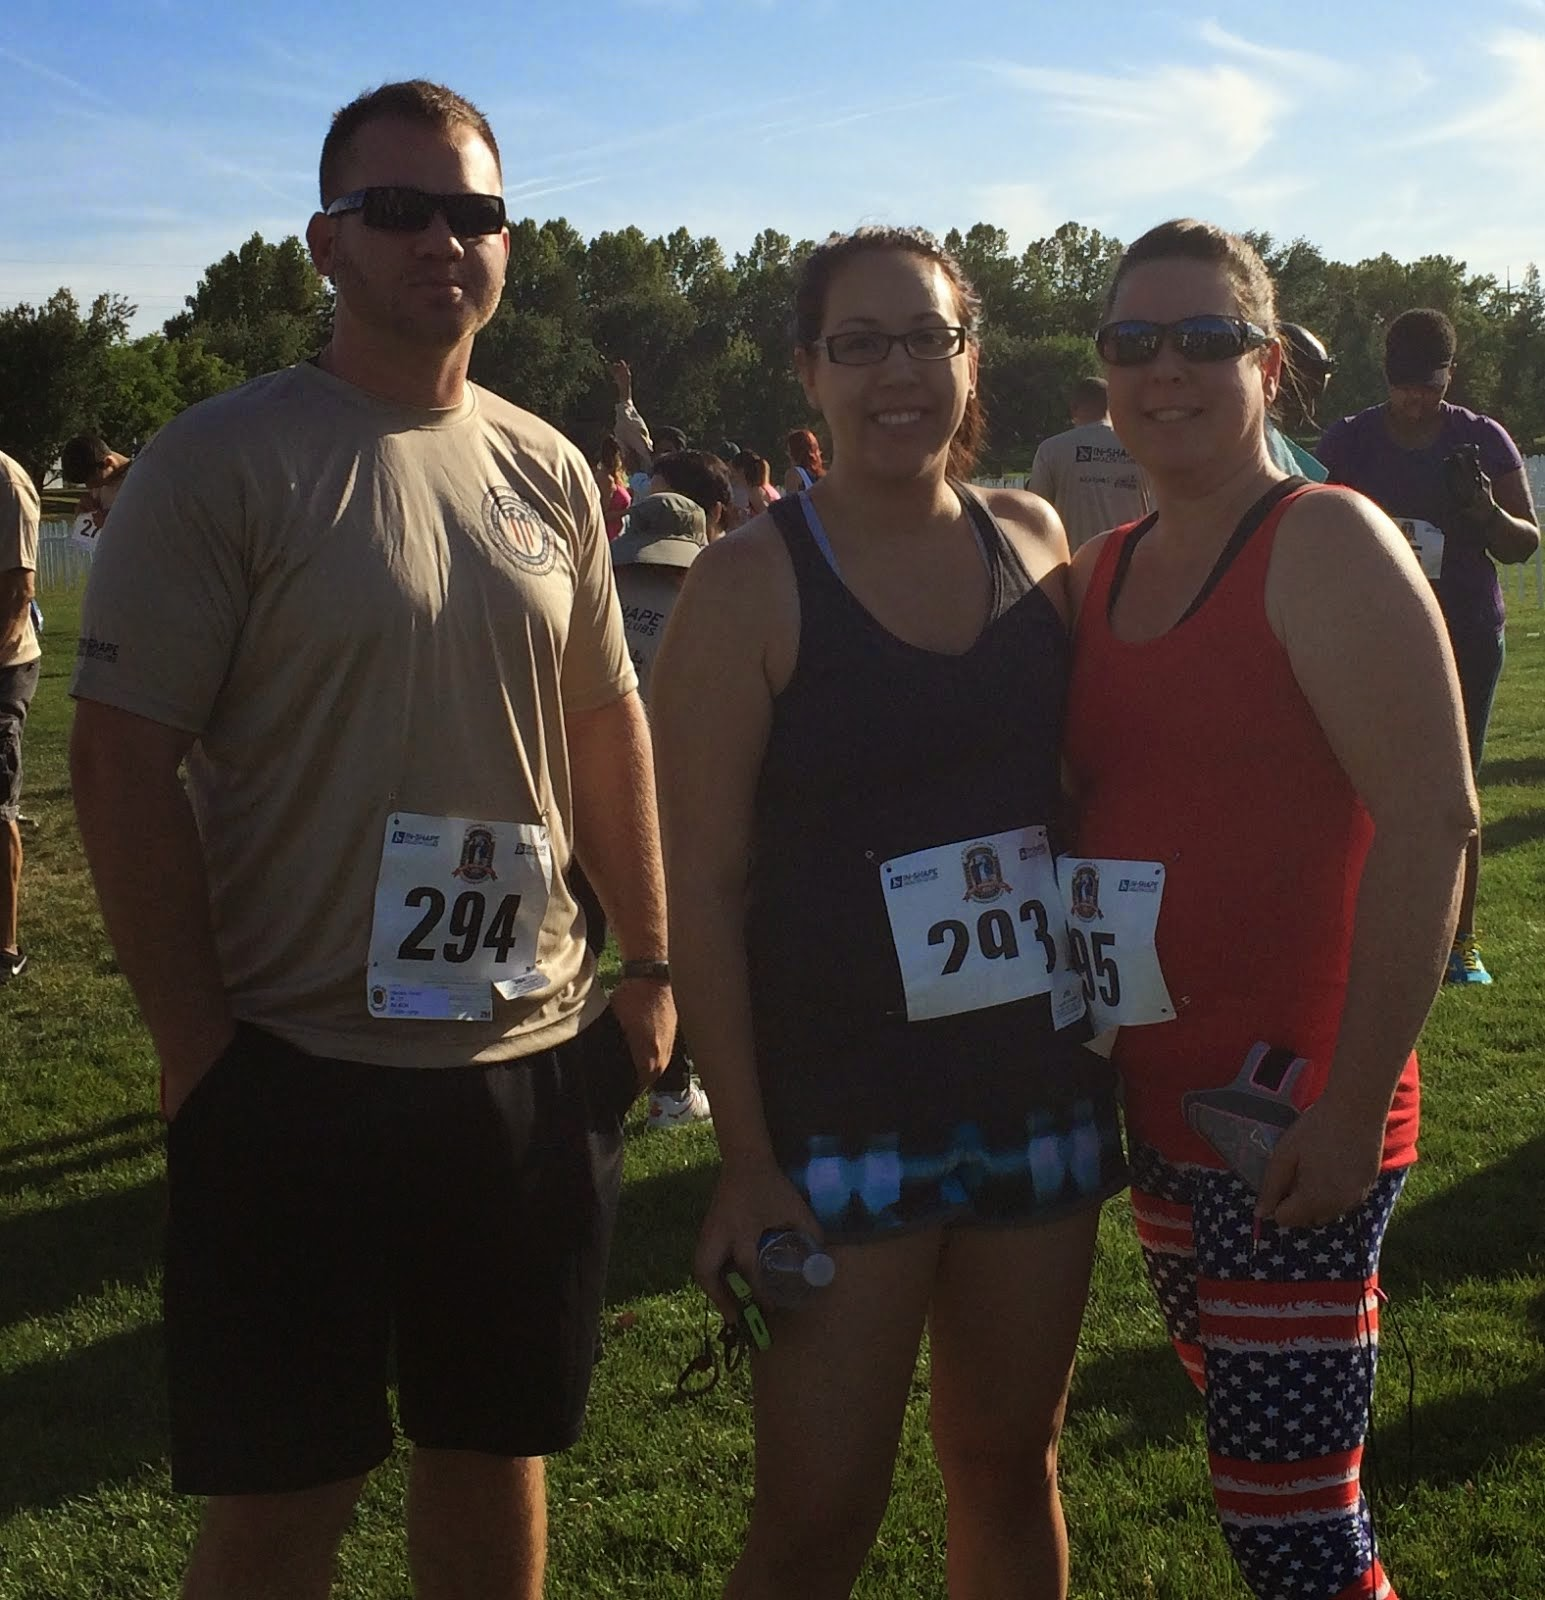 Wounded Warrior 5k May 25, 2014